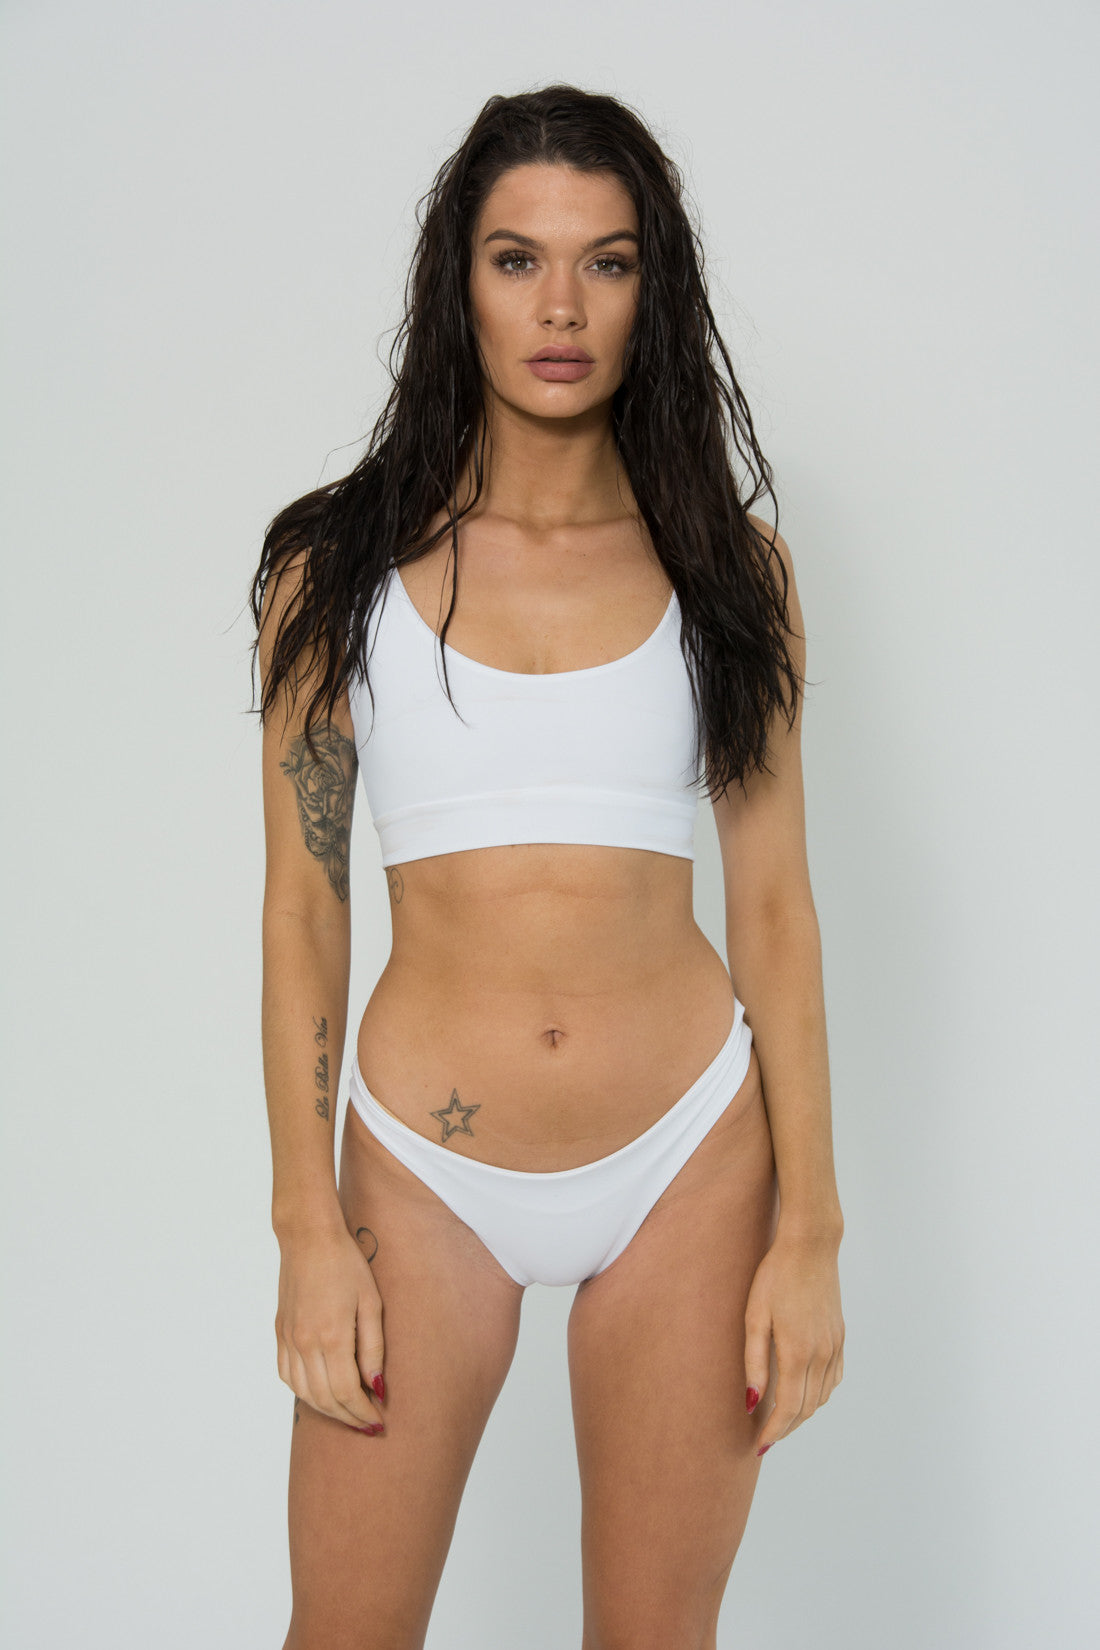 THE 'AXA' BIKINI BRAZILIAN